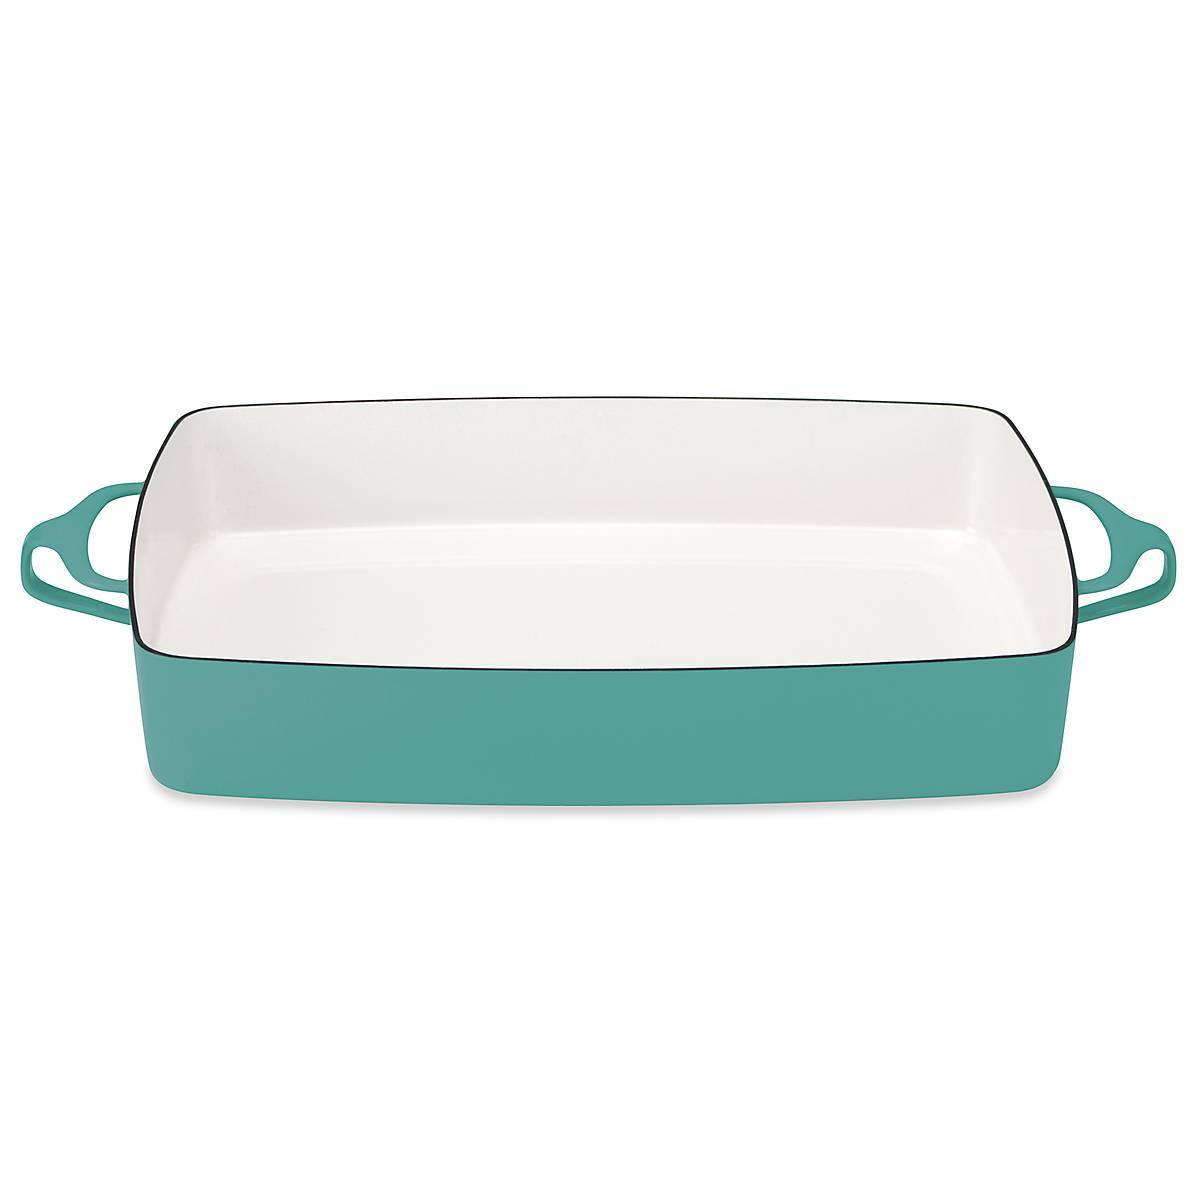 All That Time in the Kitchen Is Way More Fun With Splatter-Paint Bakeware